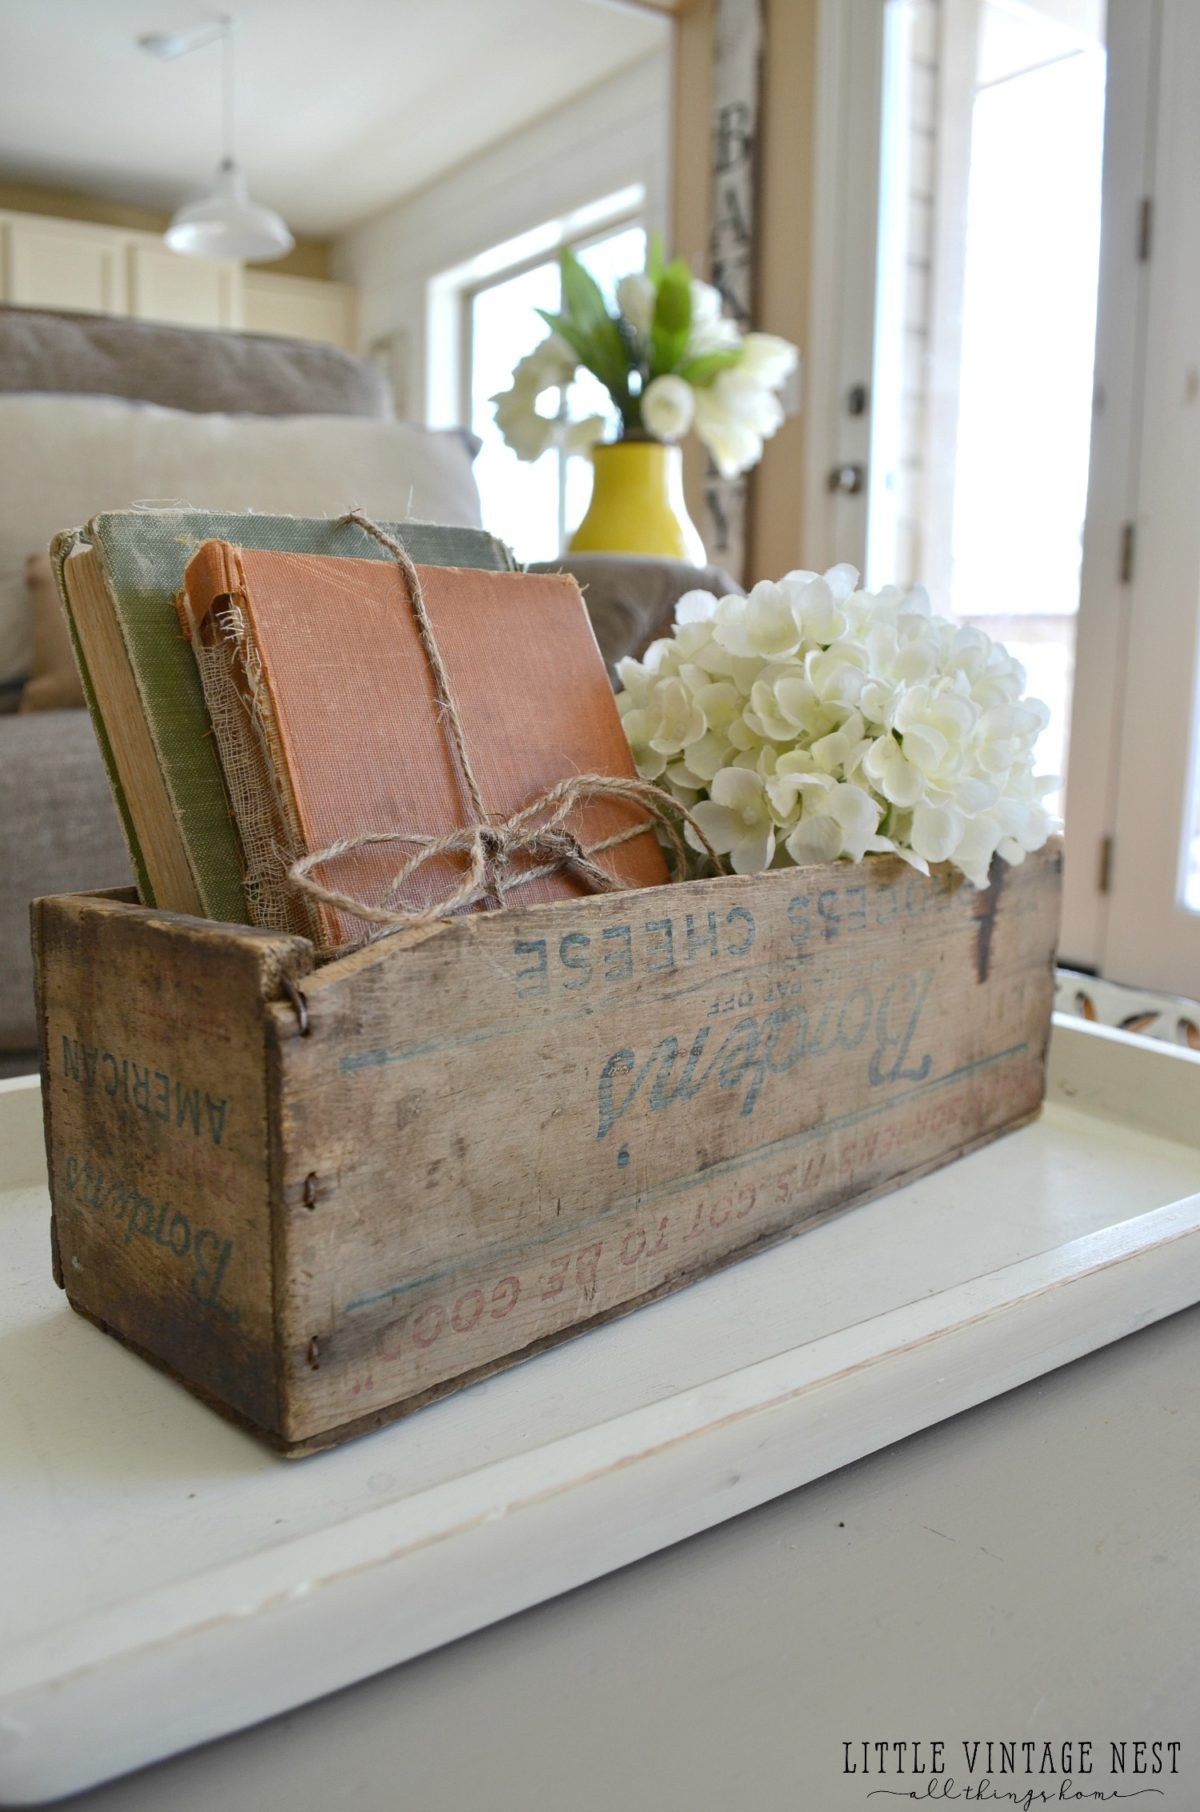 How to decorate with vintage decor little vintage nest Home interior book